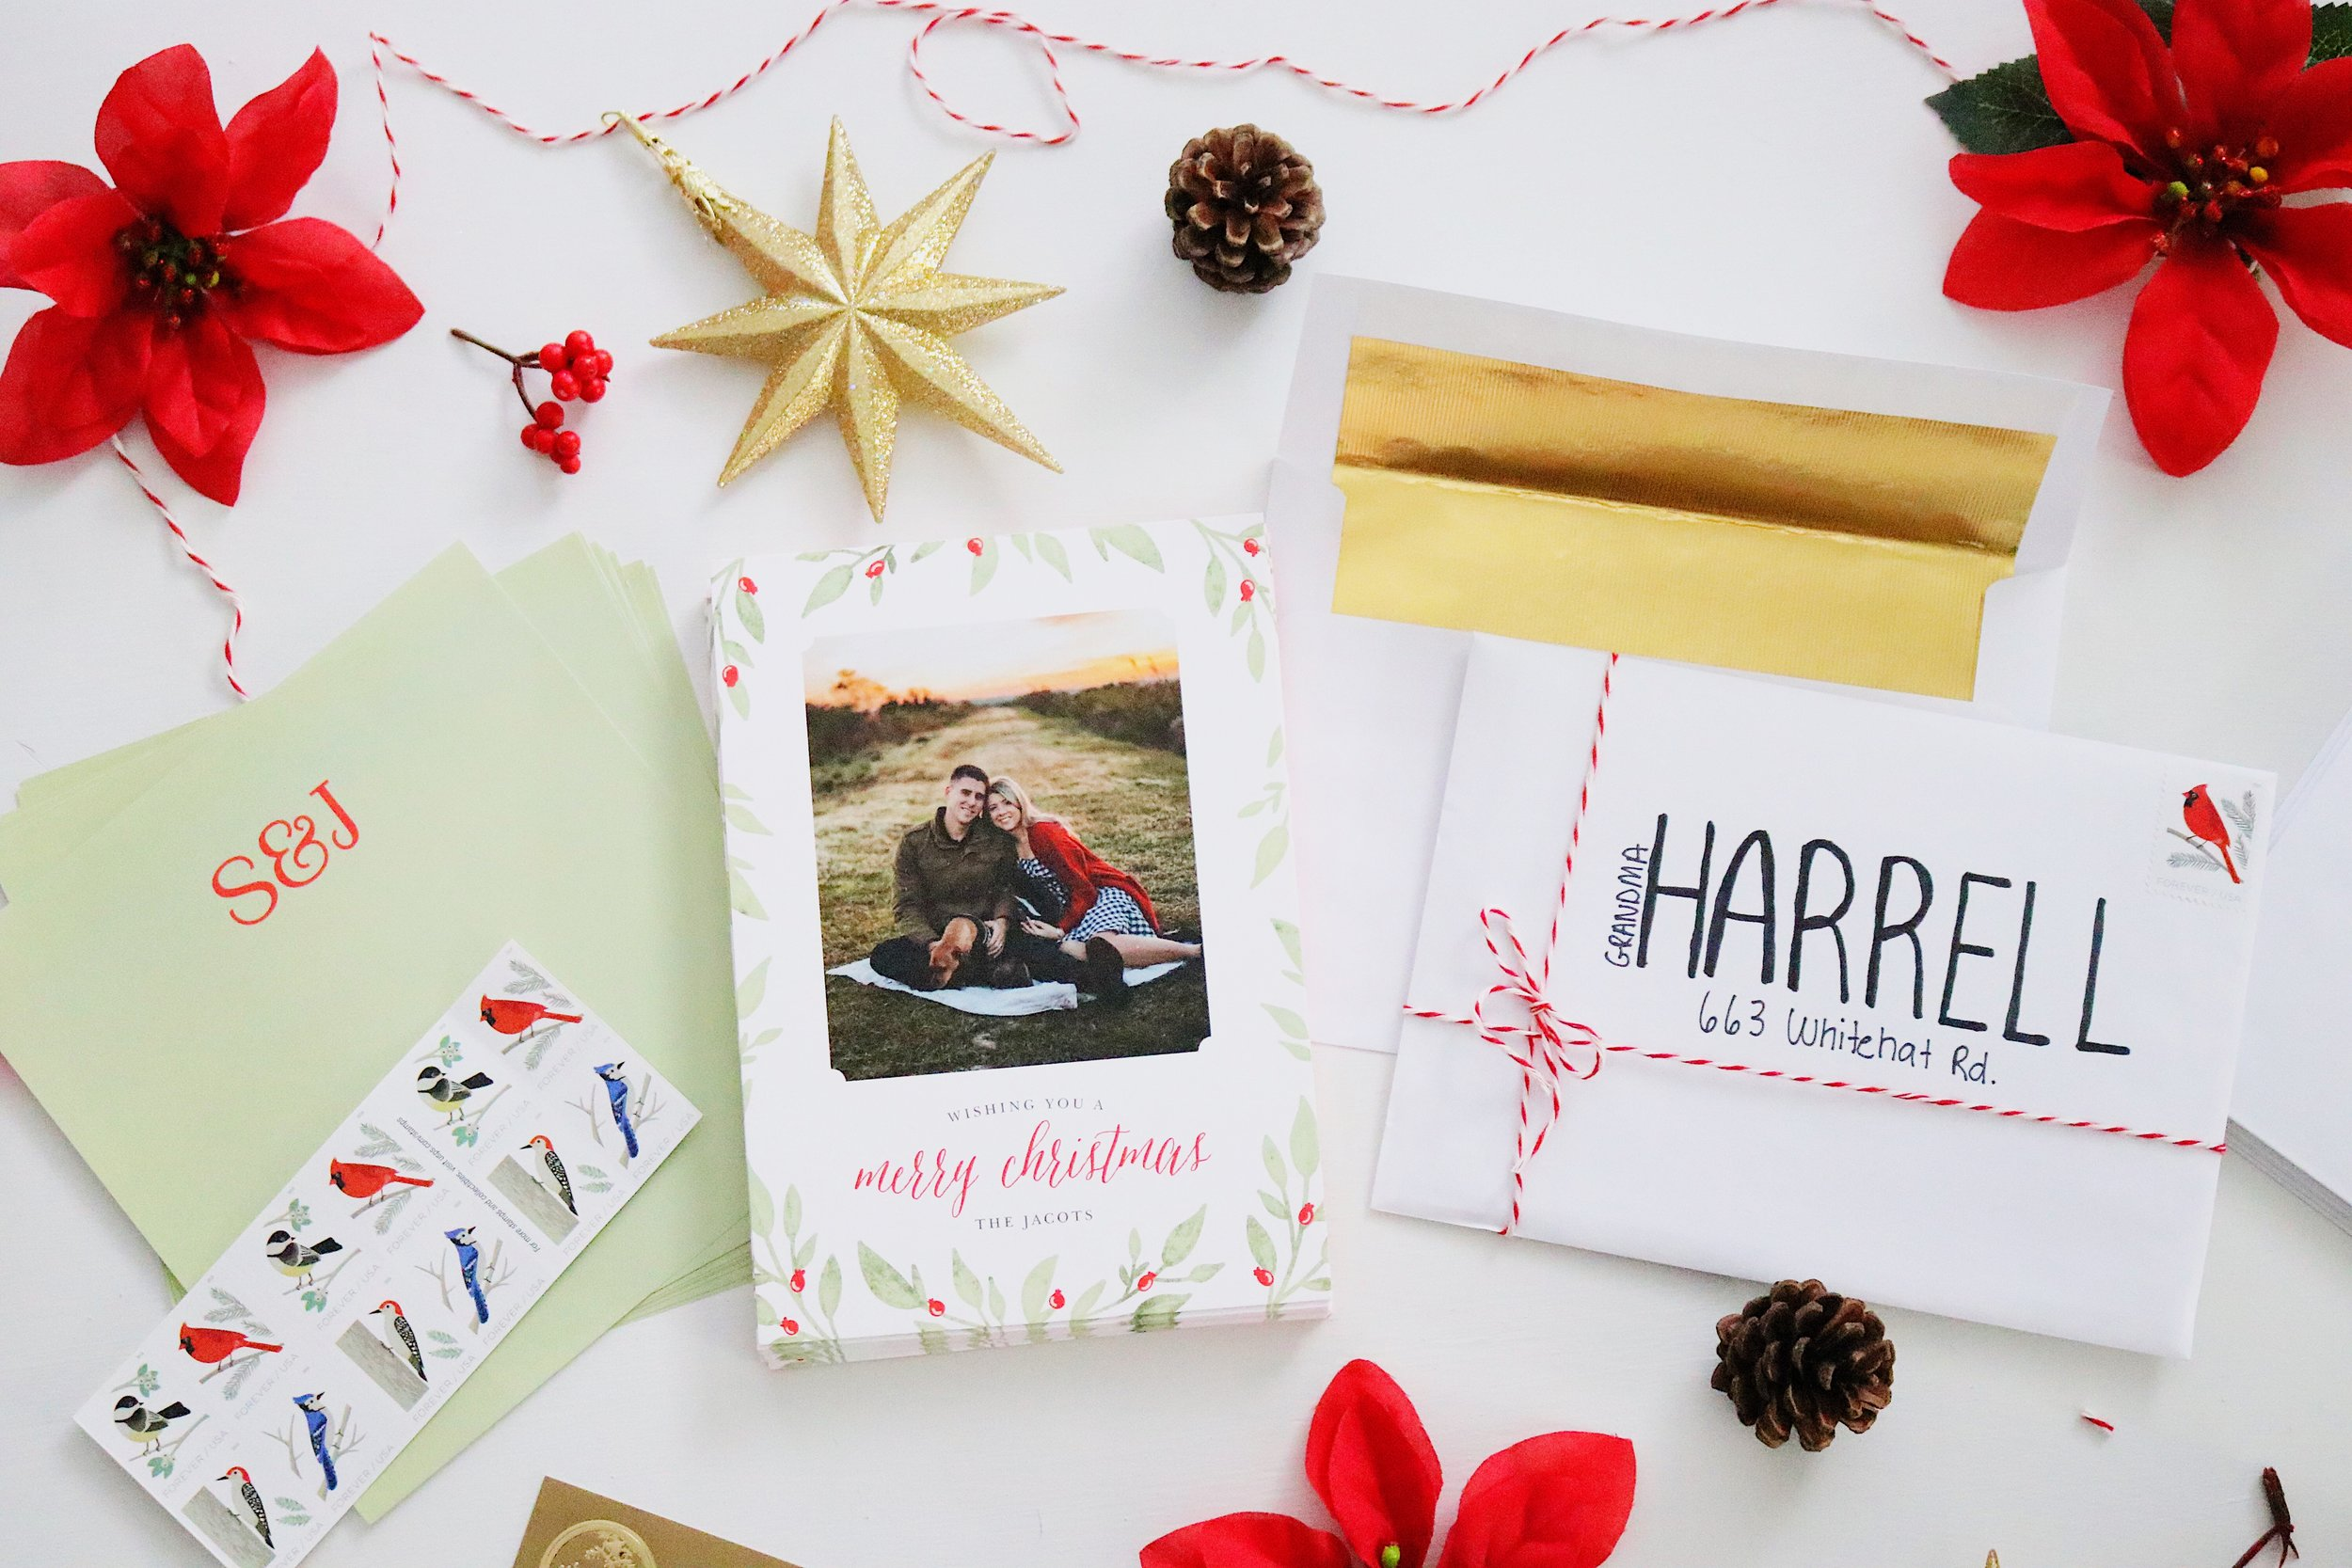 Wander Dust Blog - 4 Tips You Should Know Before Sending Holiday Cards - Basic Invite - Beautiful Christmas Cards (2).JPG